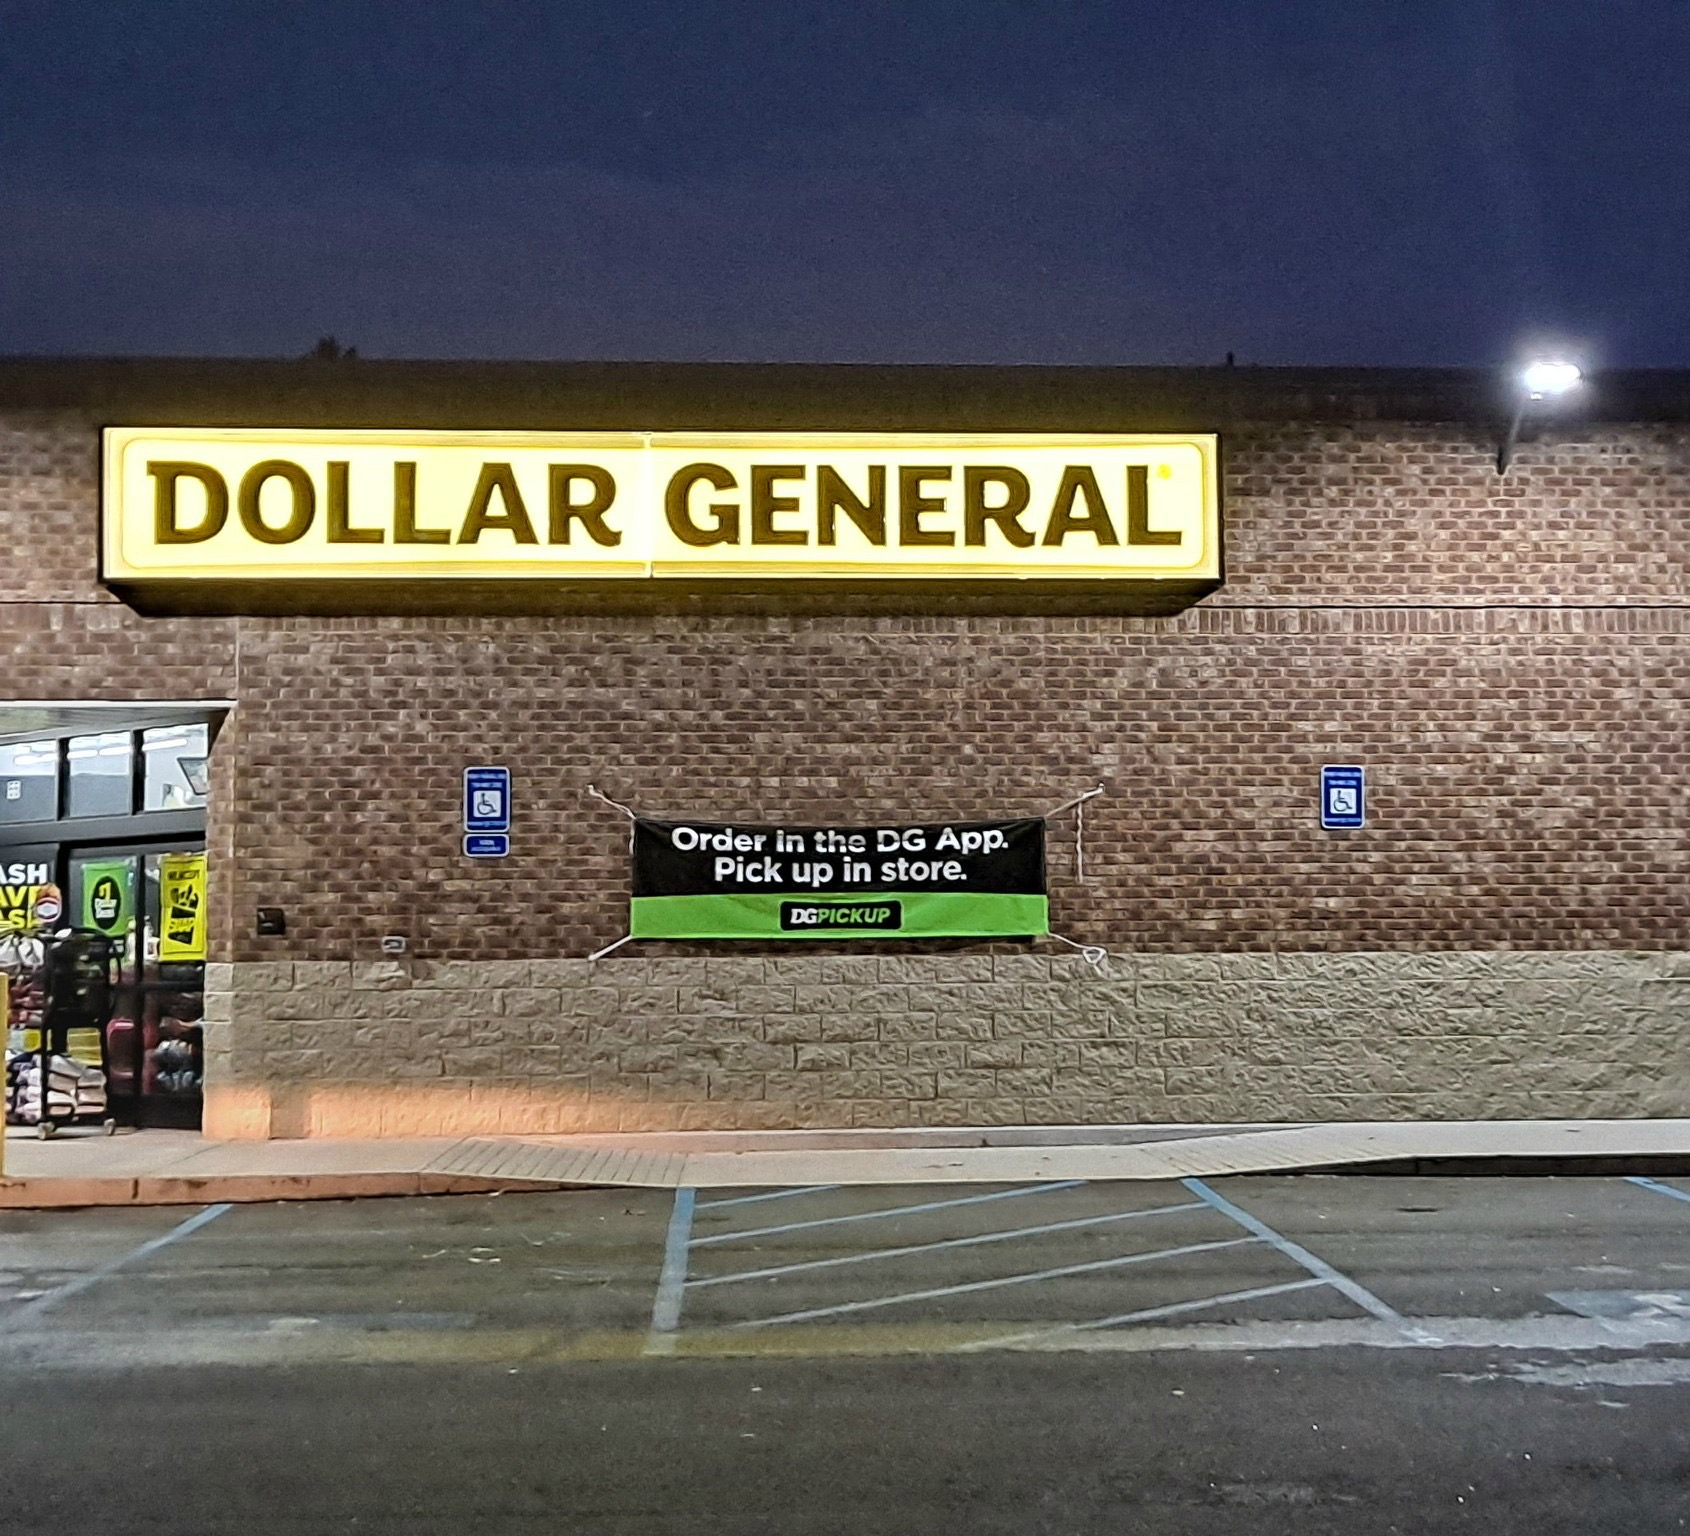 Dollar General Saturday Deals – Pay $10.75 for $29.75 Worth of Items!!